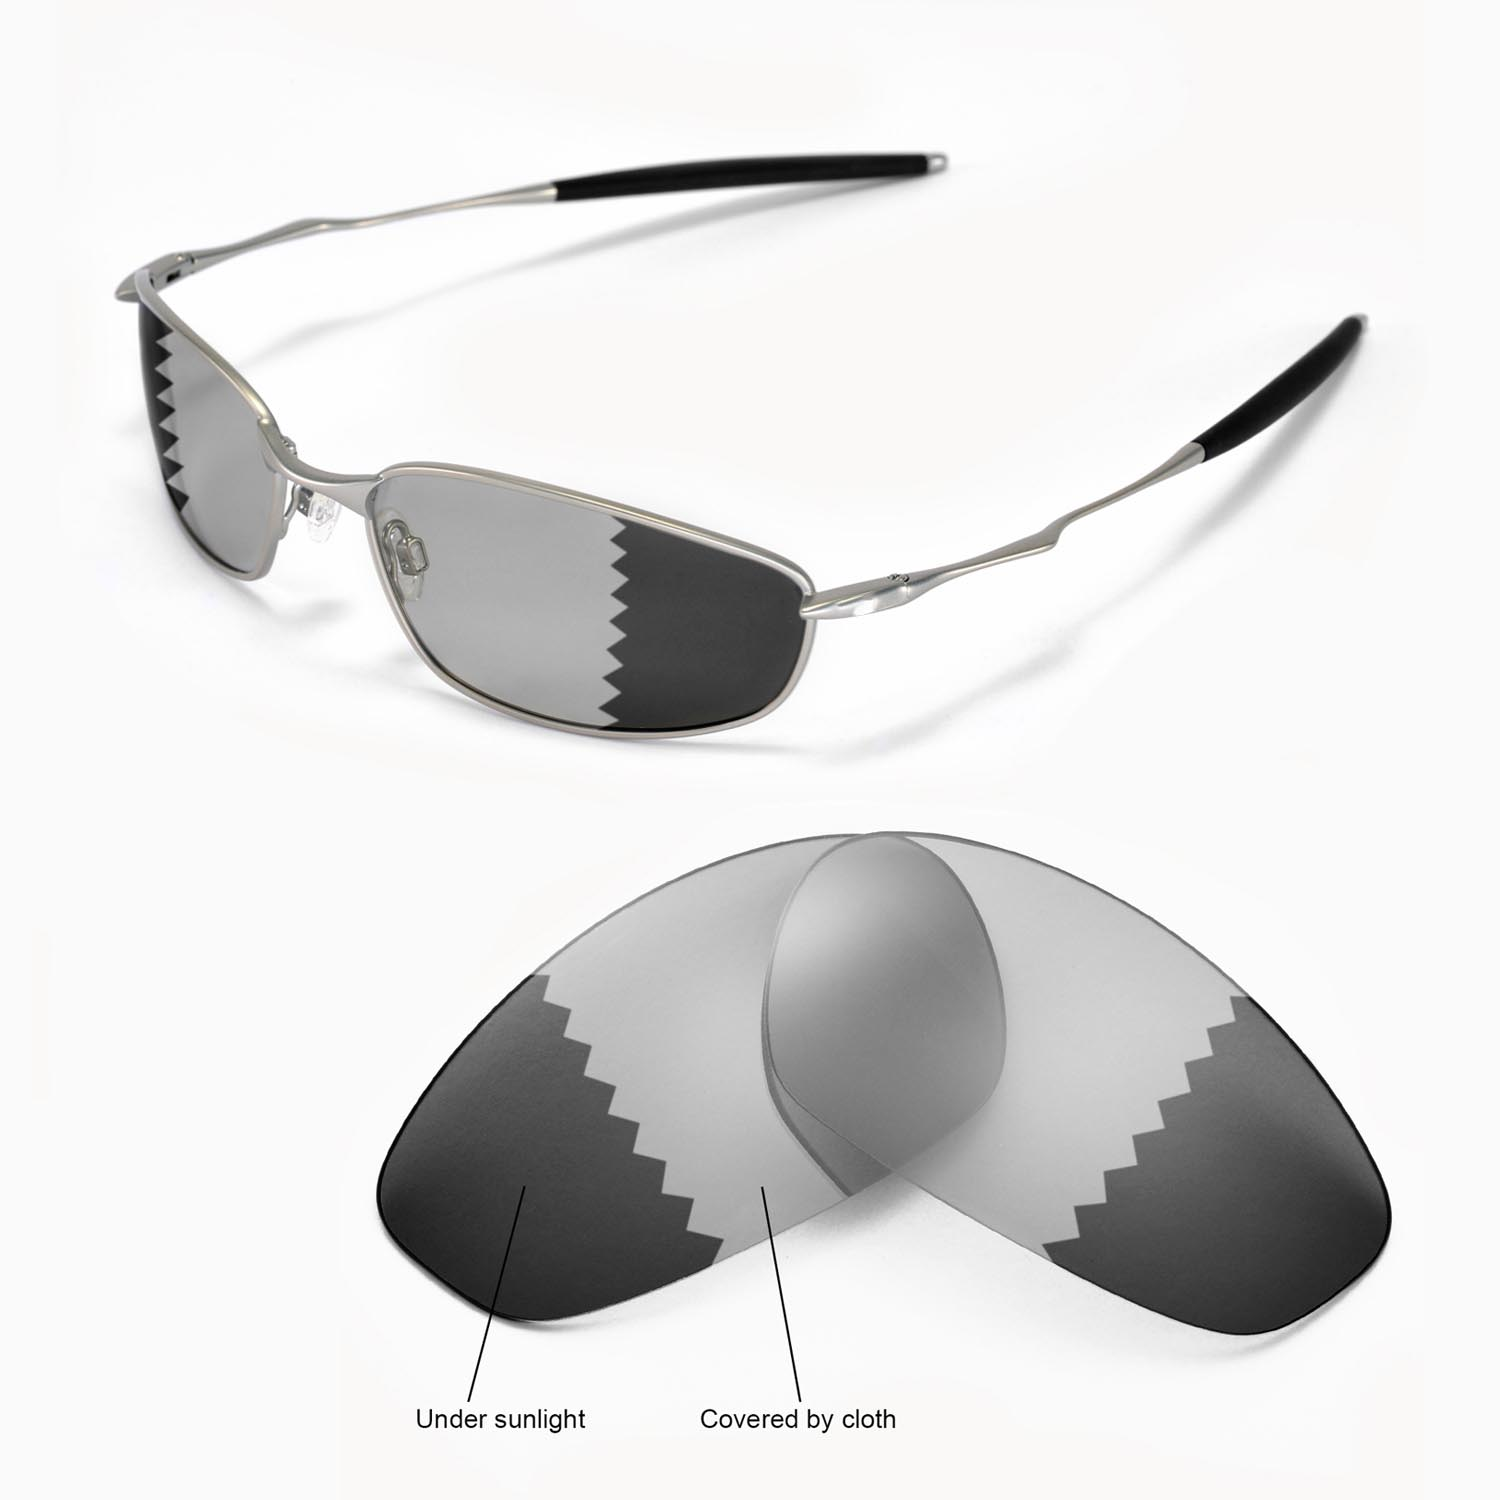 ca2cc20c5c Details about New Walleva Polarized Transition Photochromic Lenses For  Oakley Whisker